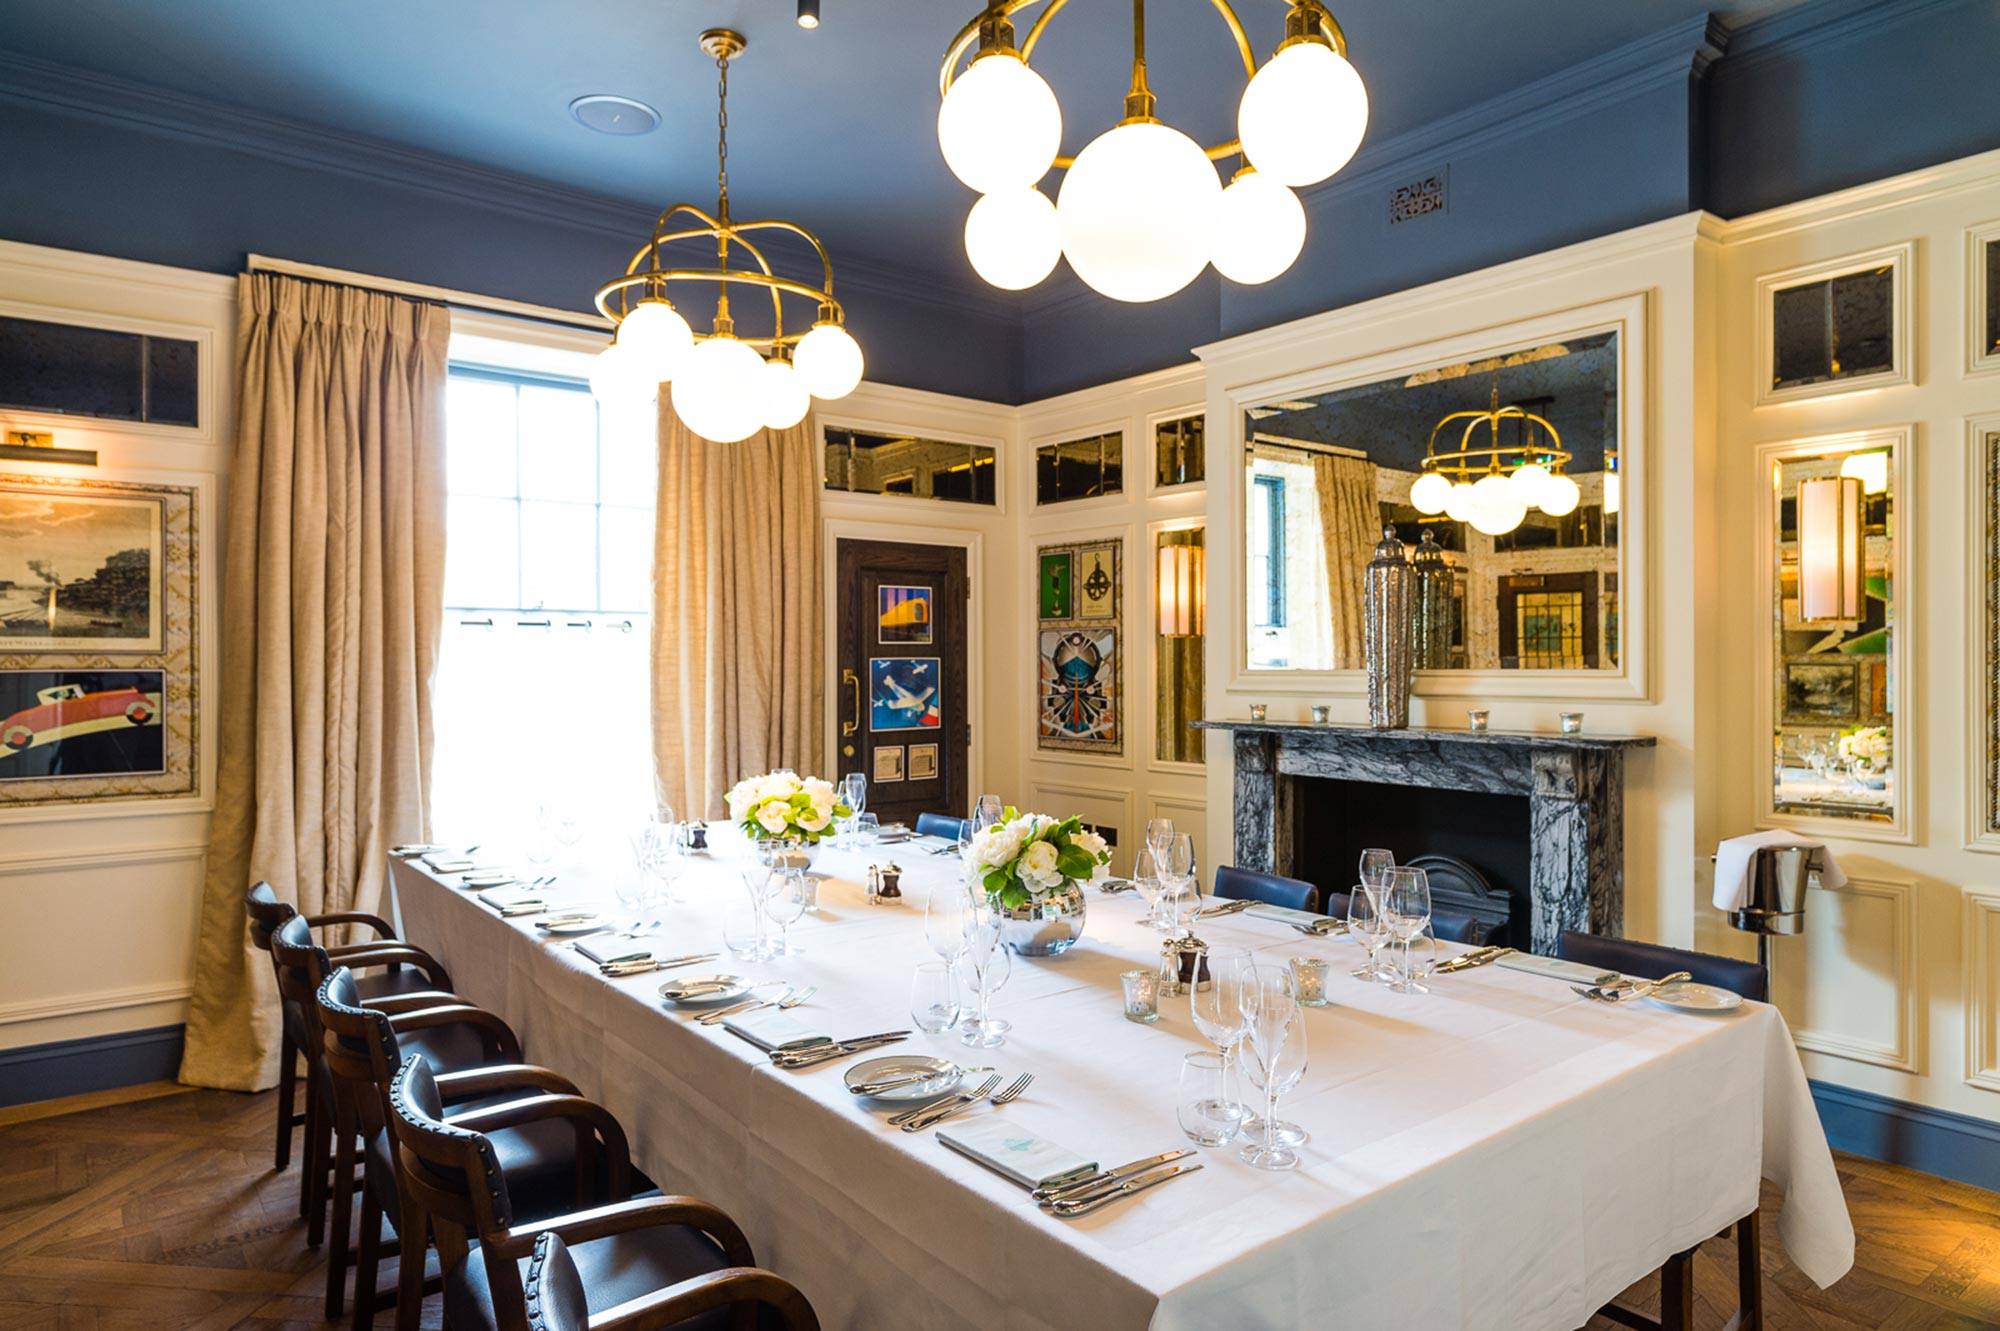 Private Dining Room - The Ivy Clifton Brasserie - The Ivy Clifton Brasserie